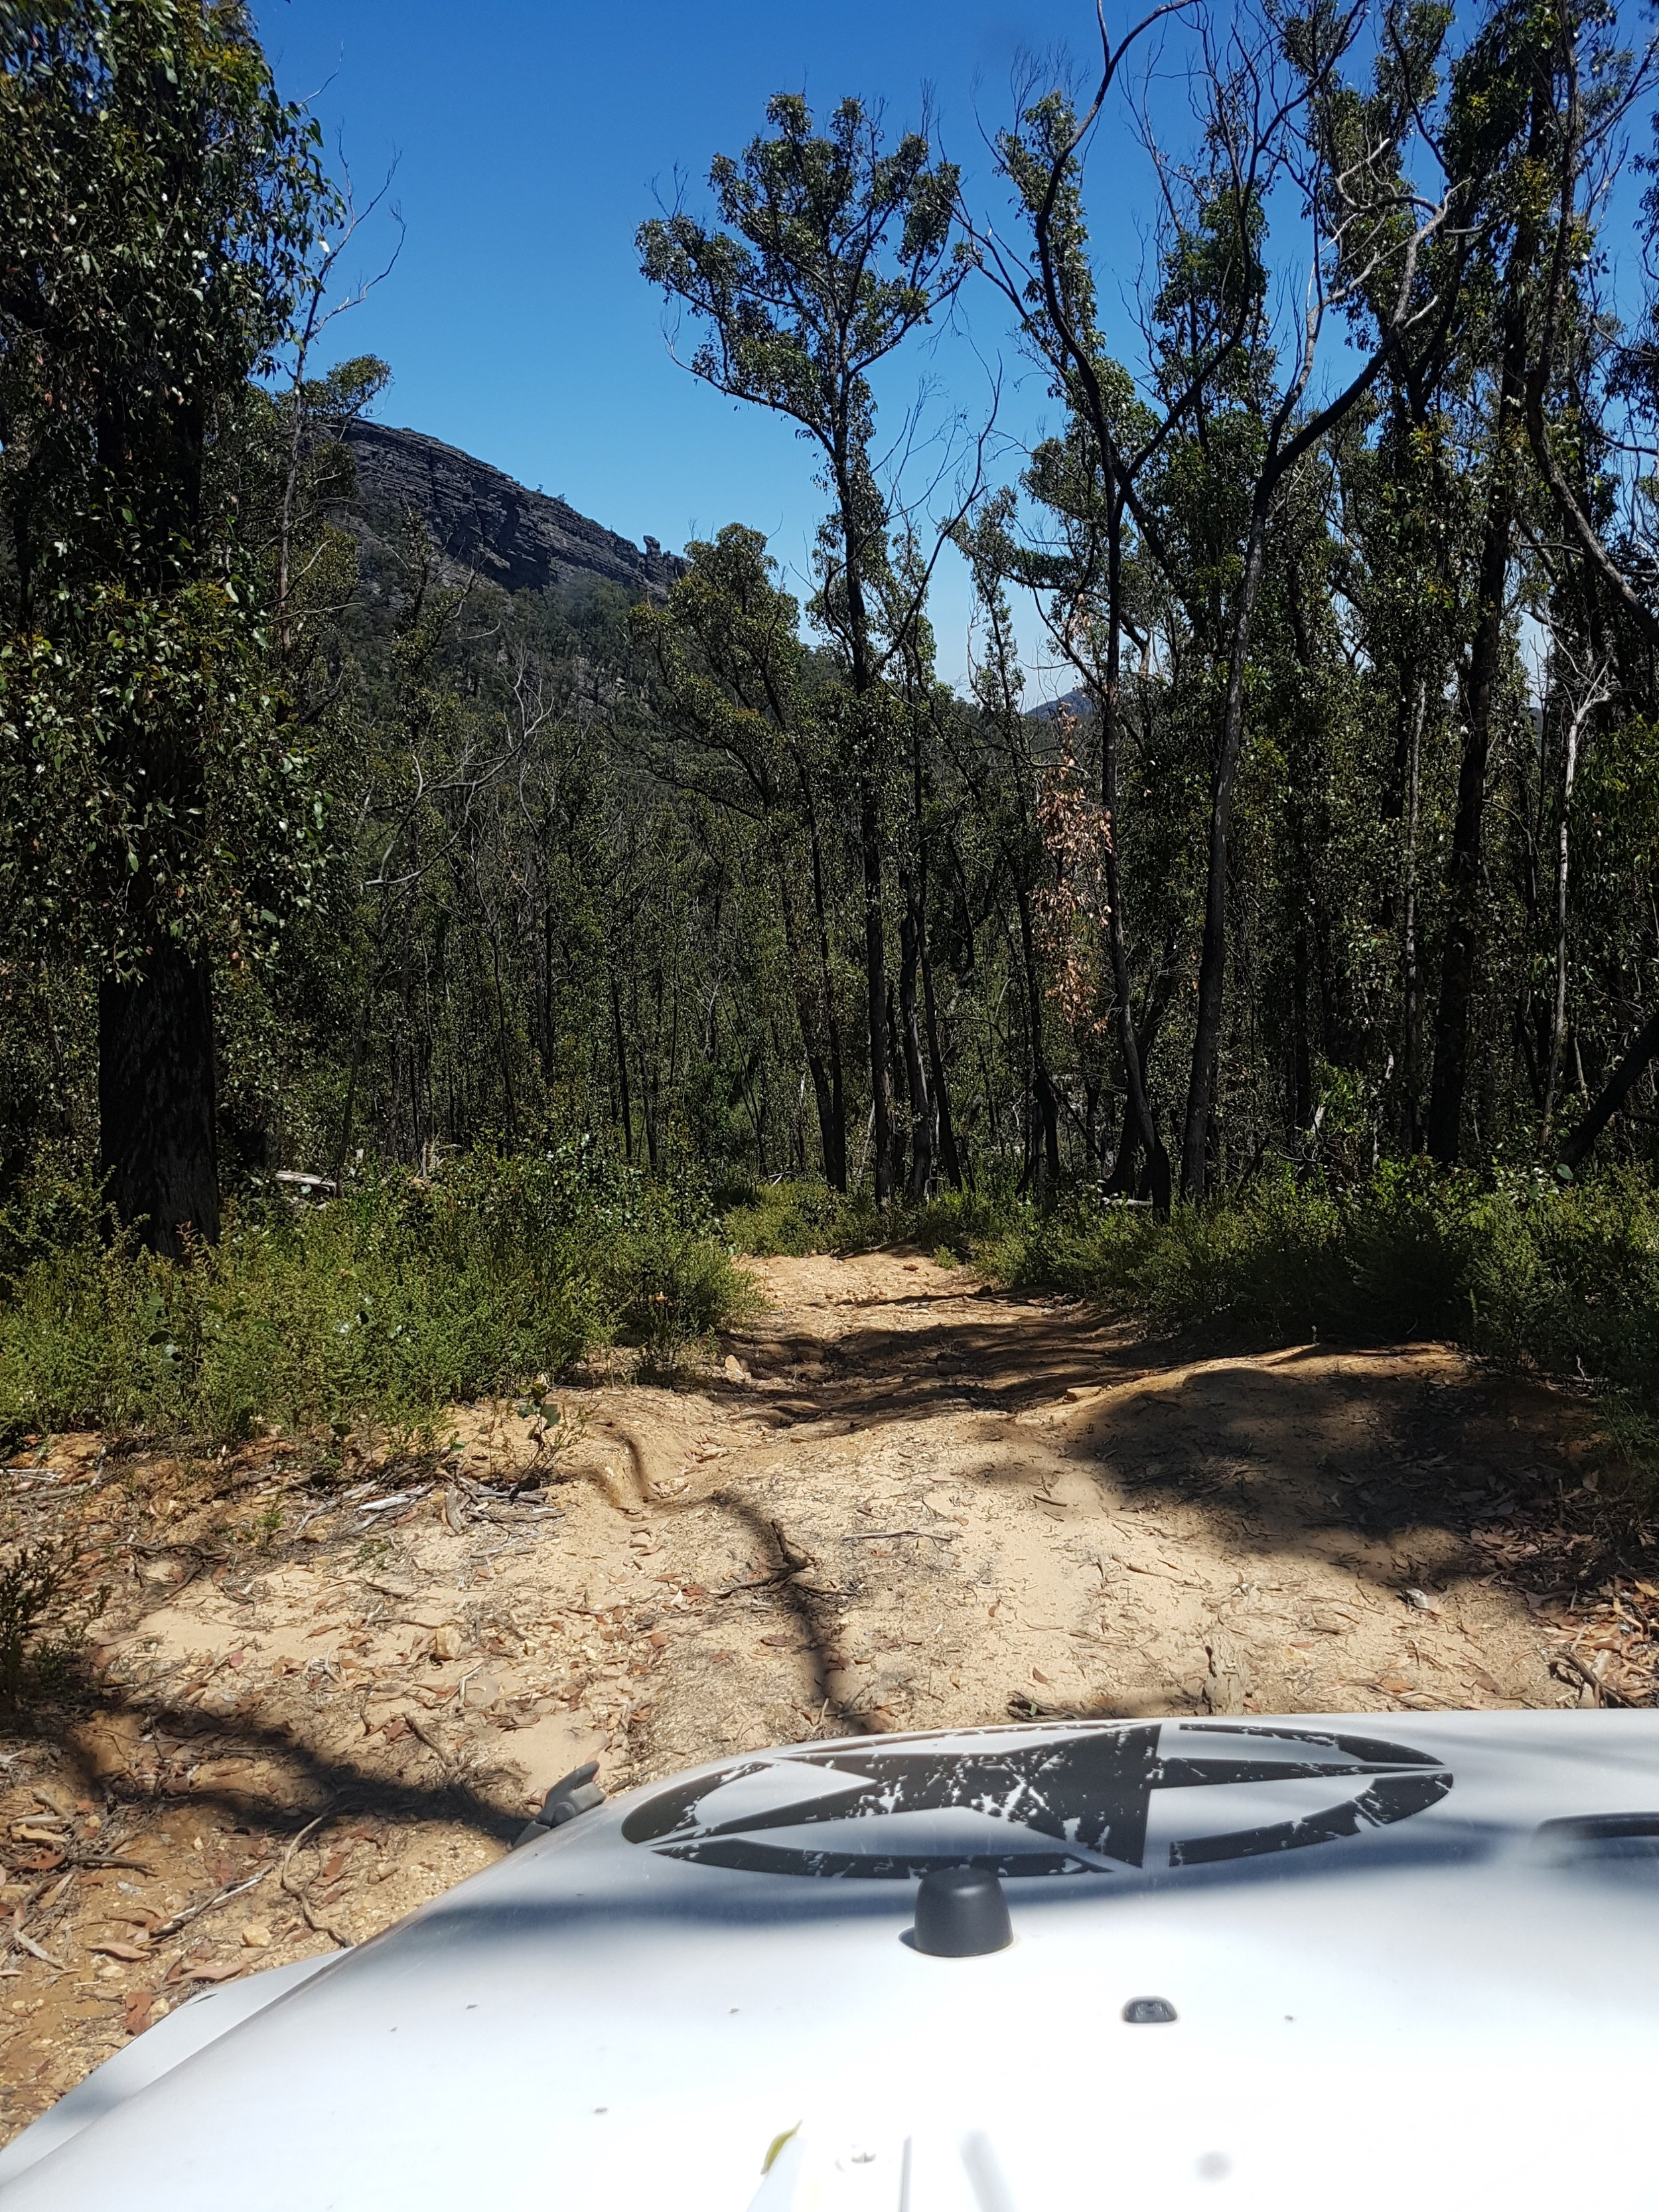 4WD tracks at the Grampians were rocky and at times steep - level of difficulty can be marked difficult at times and allow extra travelling time.